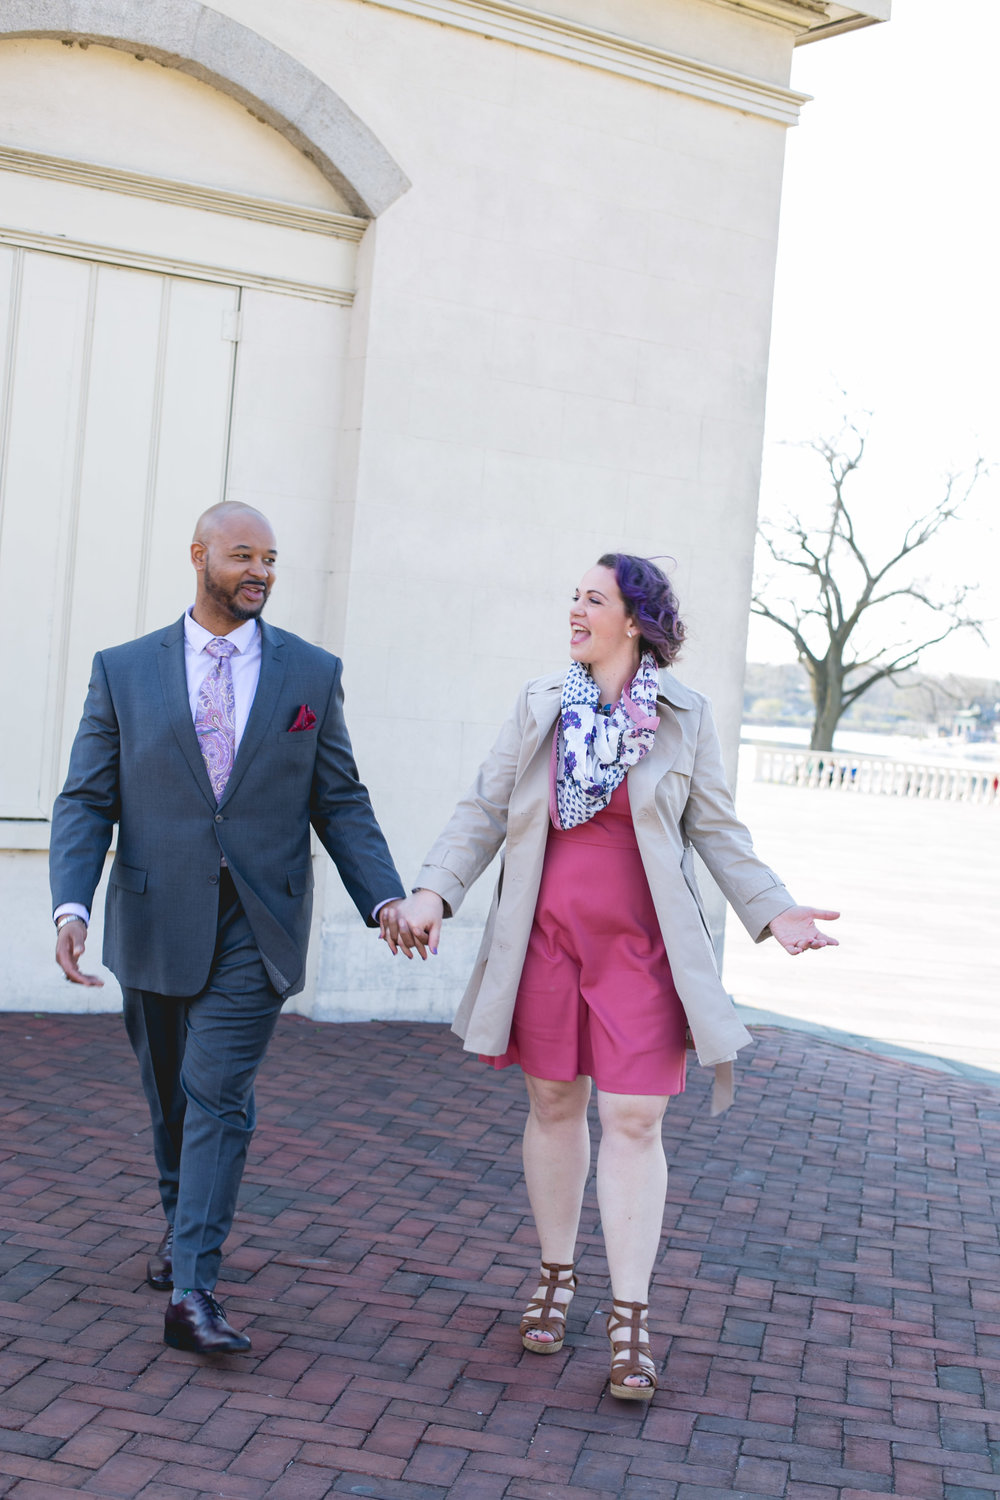 Philadelphia Spring Interacial Vibrant Engagement Shoot 9